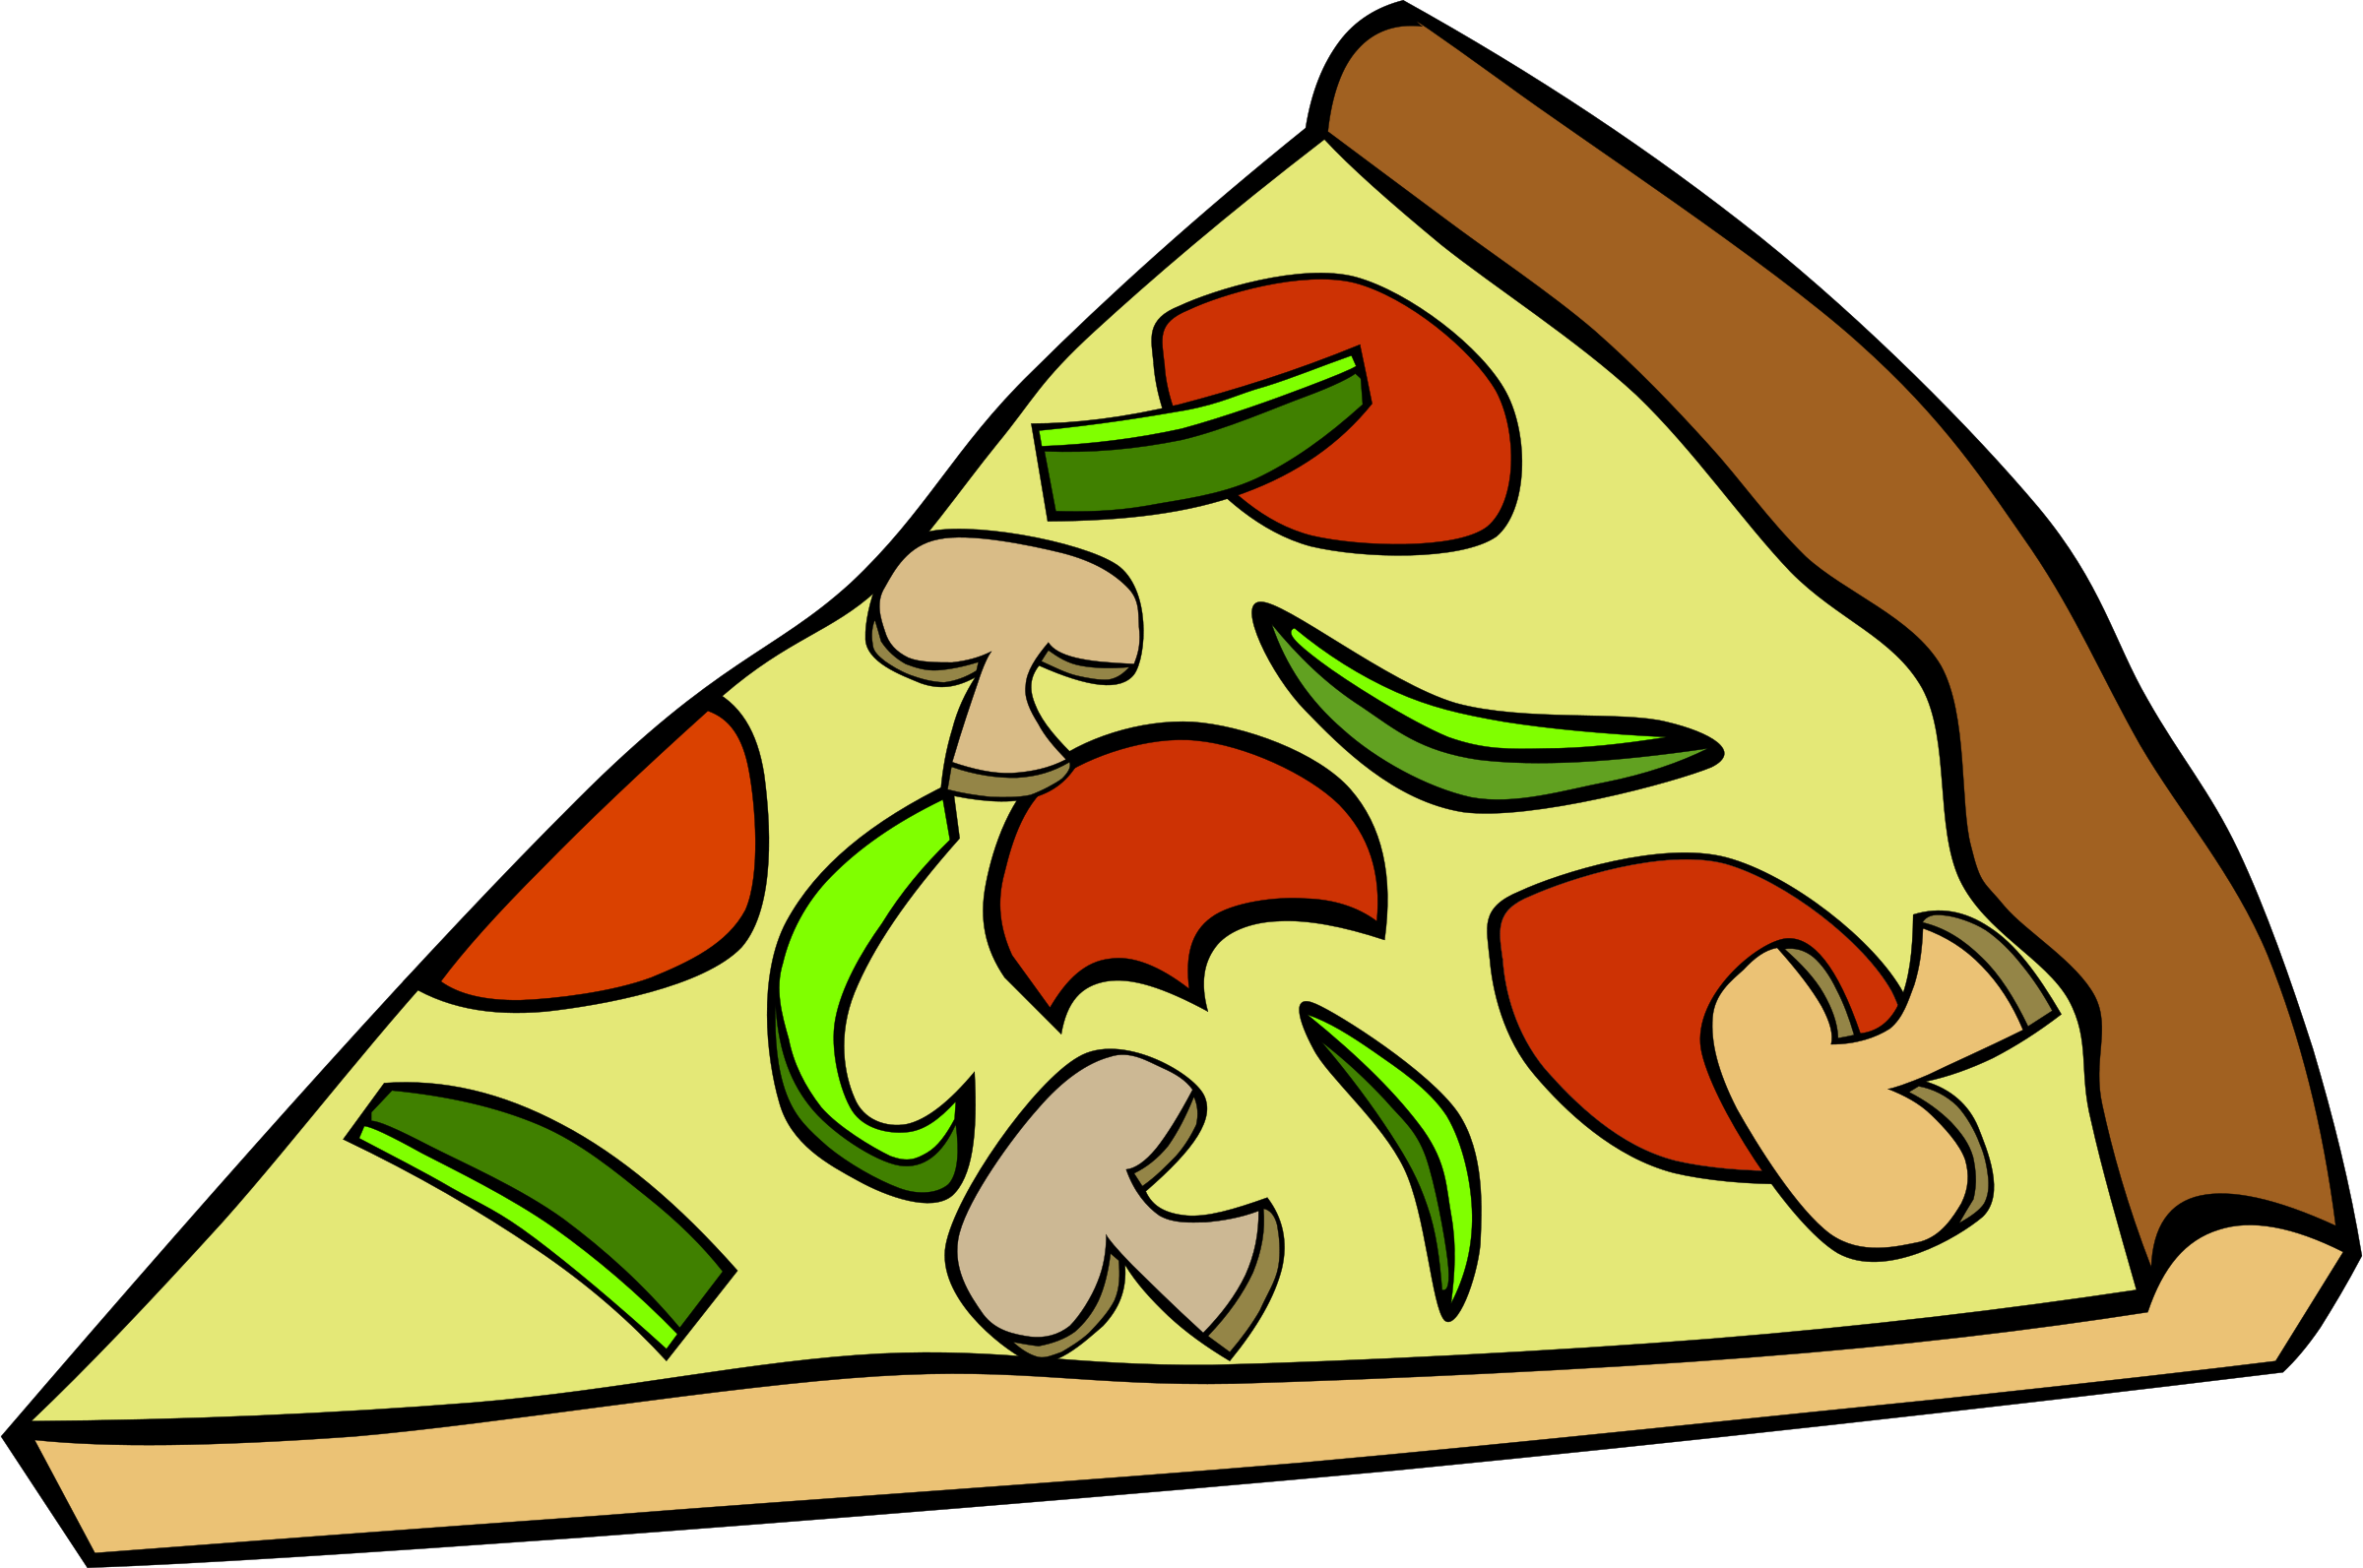 Pizza dollar bill clipart clip library library Free Images Of Pizzas, Download Free Clip Art, Free Clip Art ... clip library library